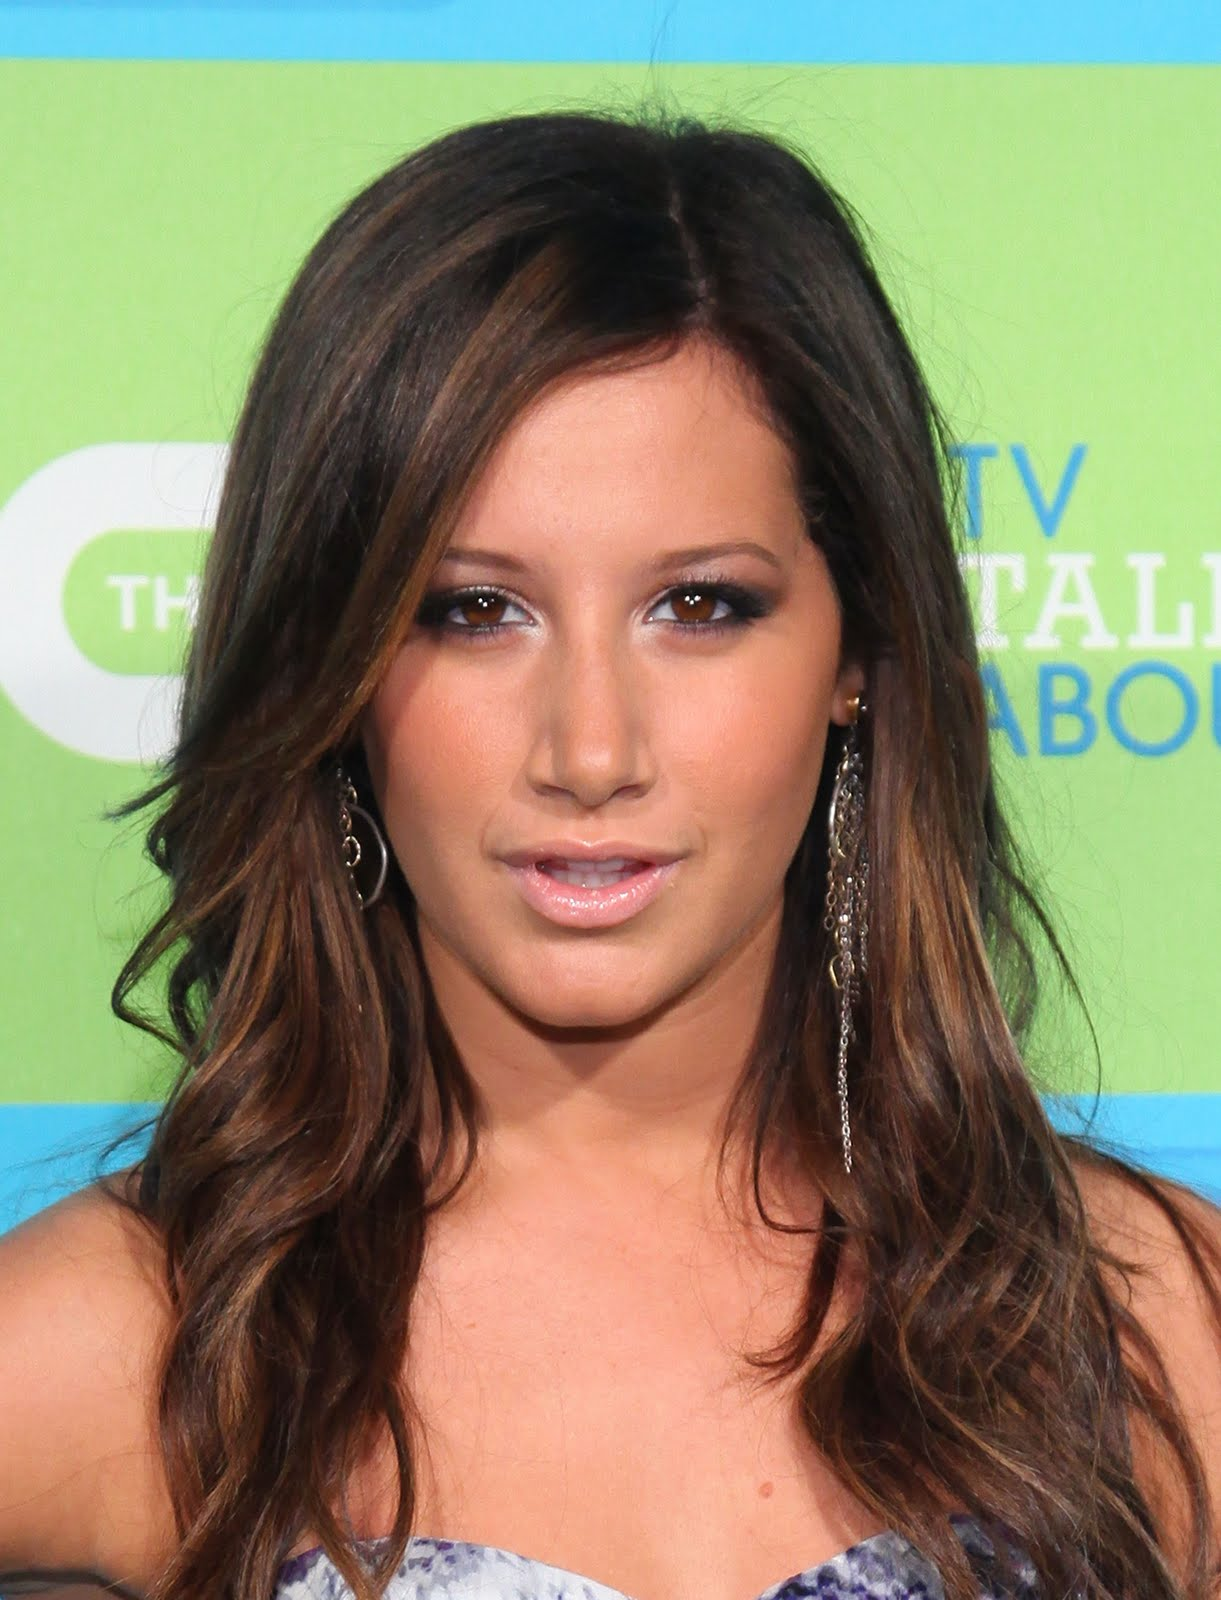 Ashley Tisdale Completely Nude